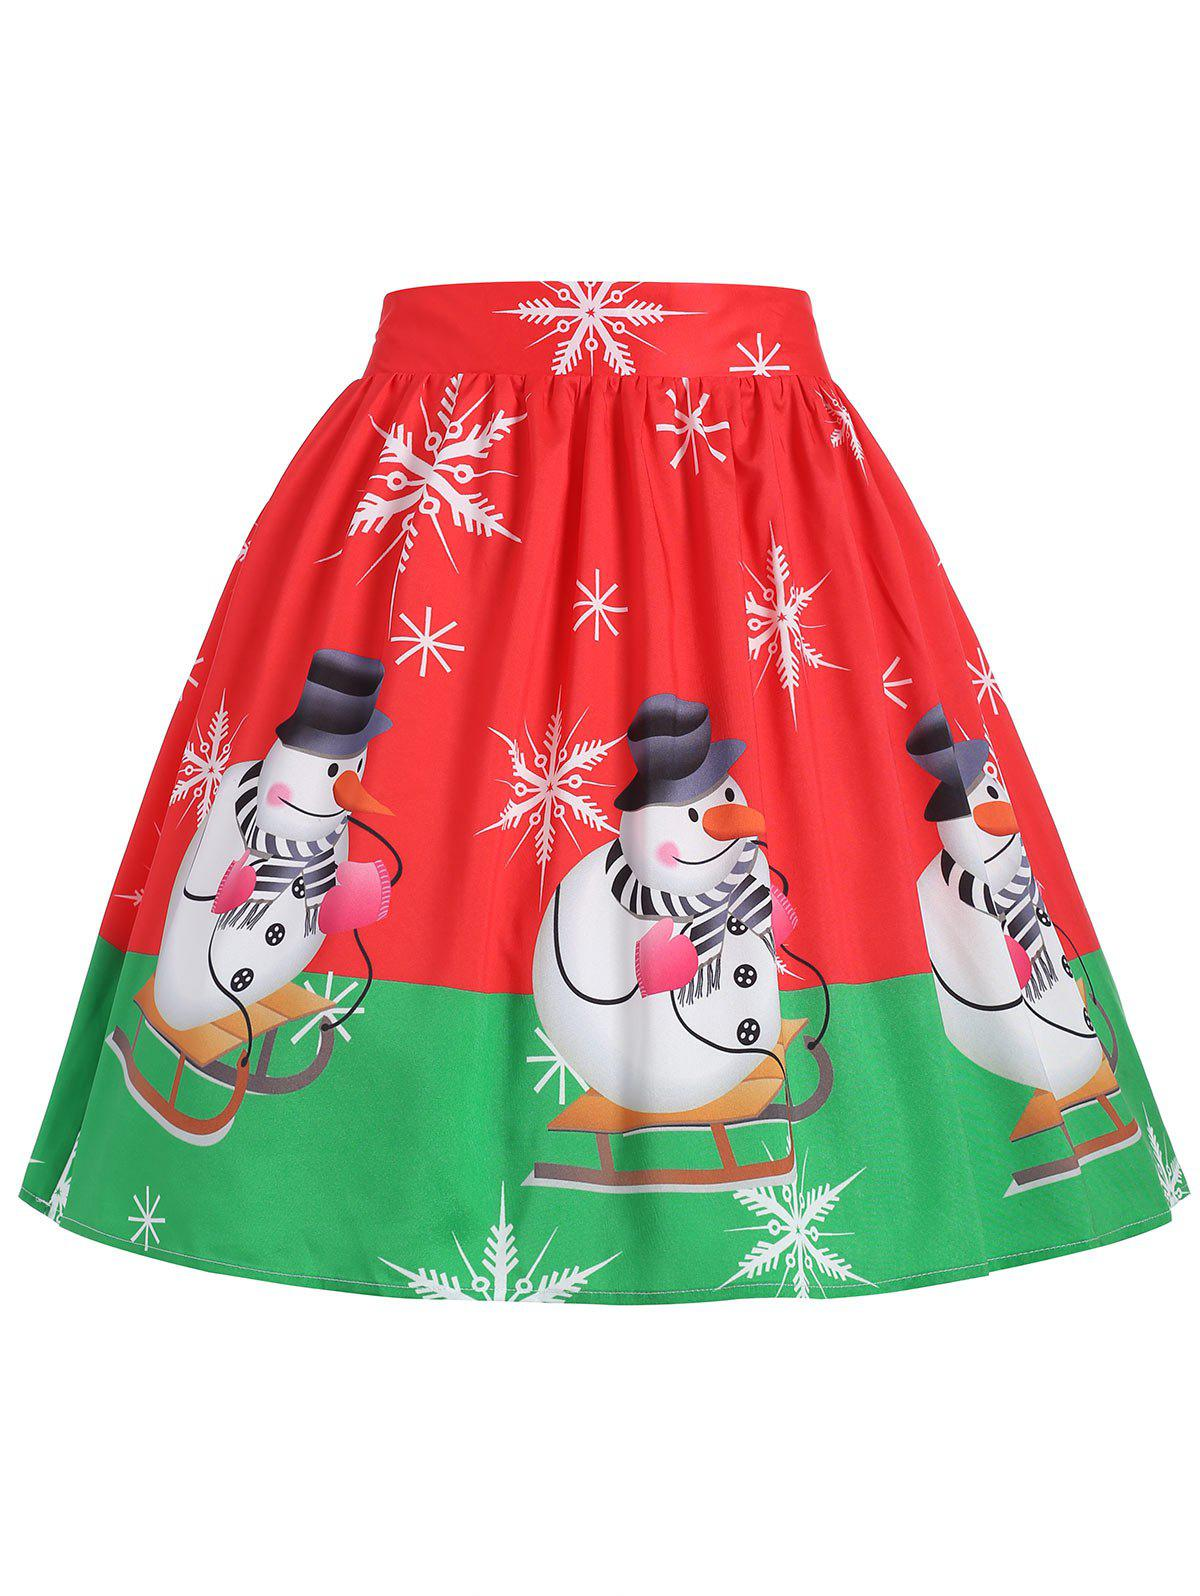 Christmas Snowflake Snowman Plus Size SkirtWOMEN<br><br>Size: XL; Color: RED; Material: Polyester; Length: Mini; Silhouette: A-Line; Pattern Type: Print; Season: Fall,Winter; With Belt: No; Weight: 0.1850kg; Package Contents: 1 x Skirt;